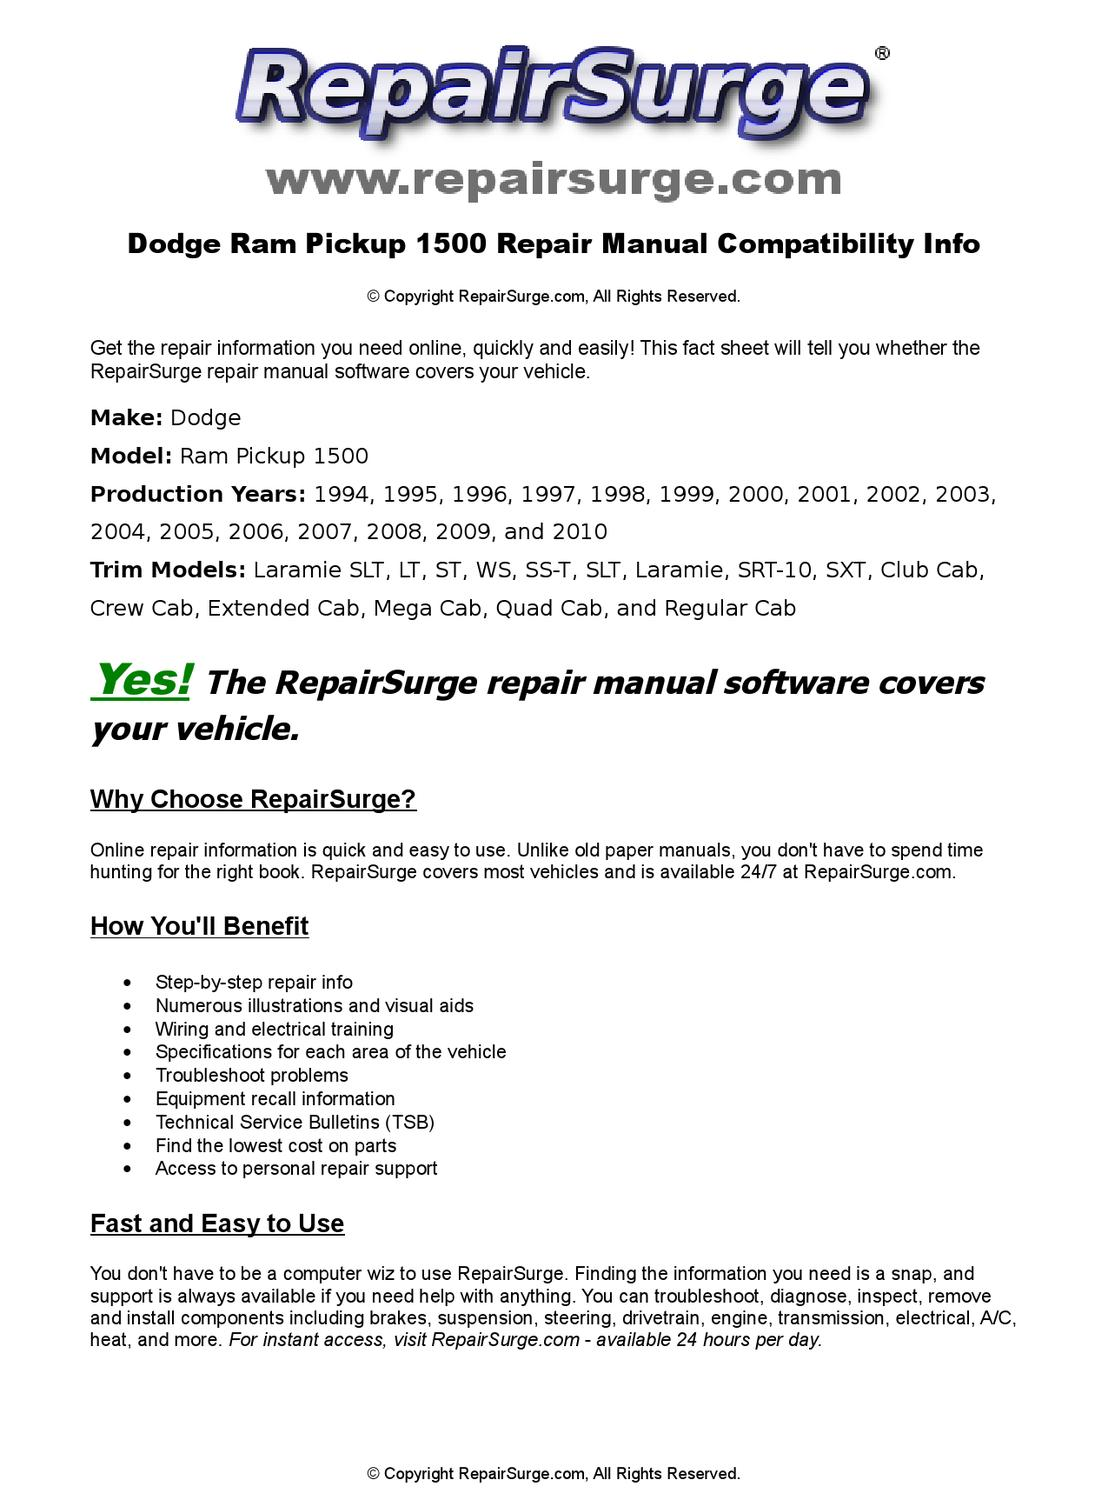 Dodge Ram Pickup 1500 Online Repair Manual For 1994, 1995, 1996, 1997,  1998, 1999, 2000, 2001, 2002, by RepairSurge - issuu